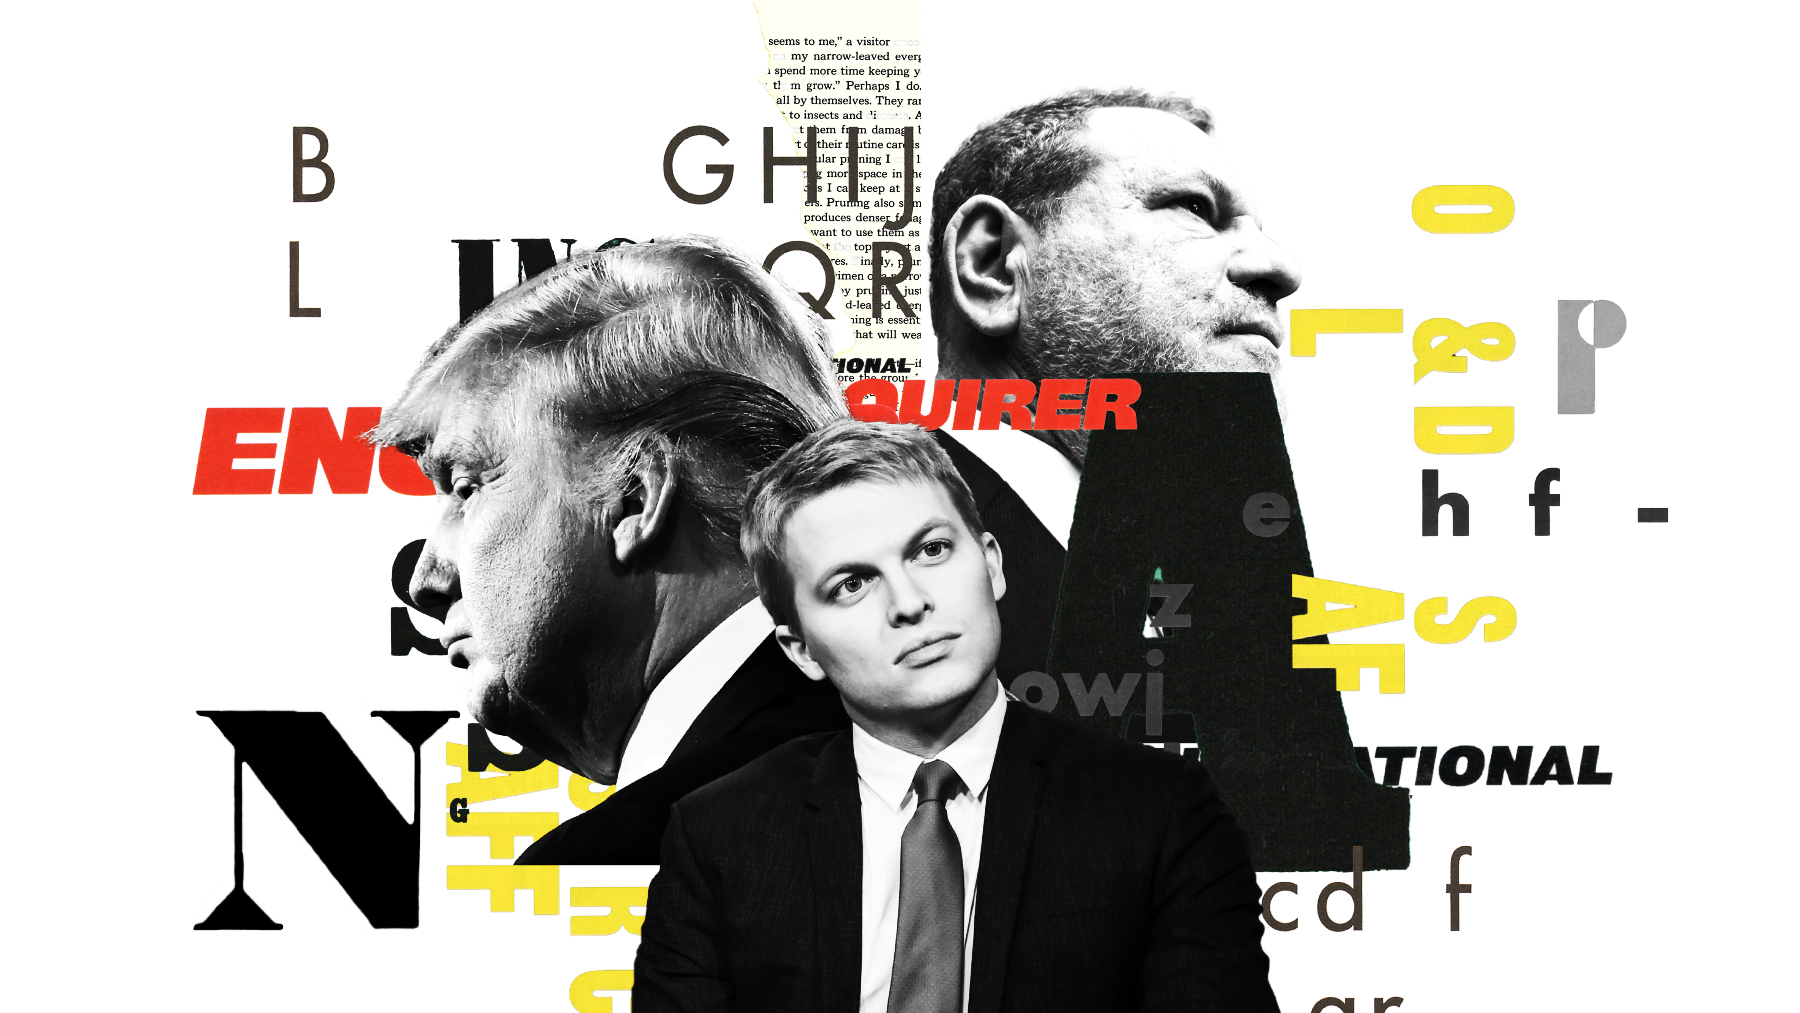 The connections between Donald Trump, Harvey Weinstein, and the National Enquirer, explained